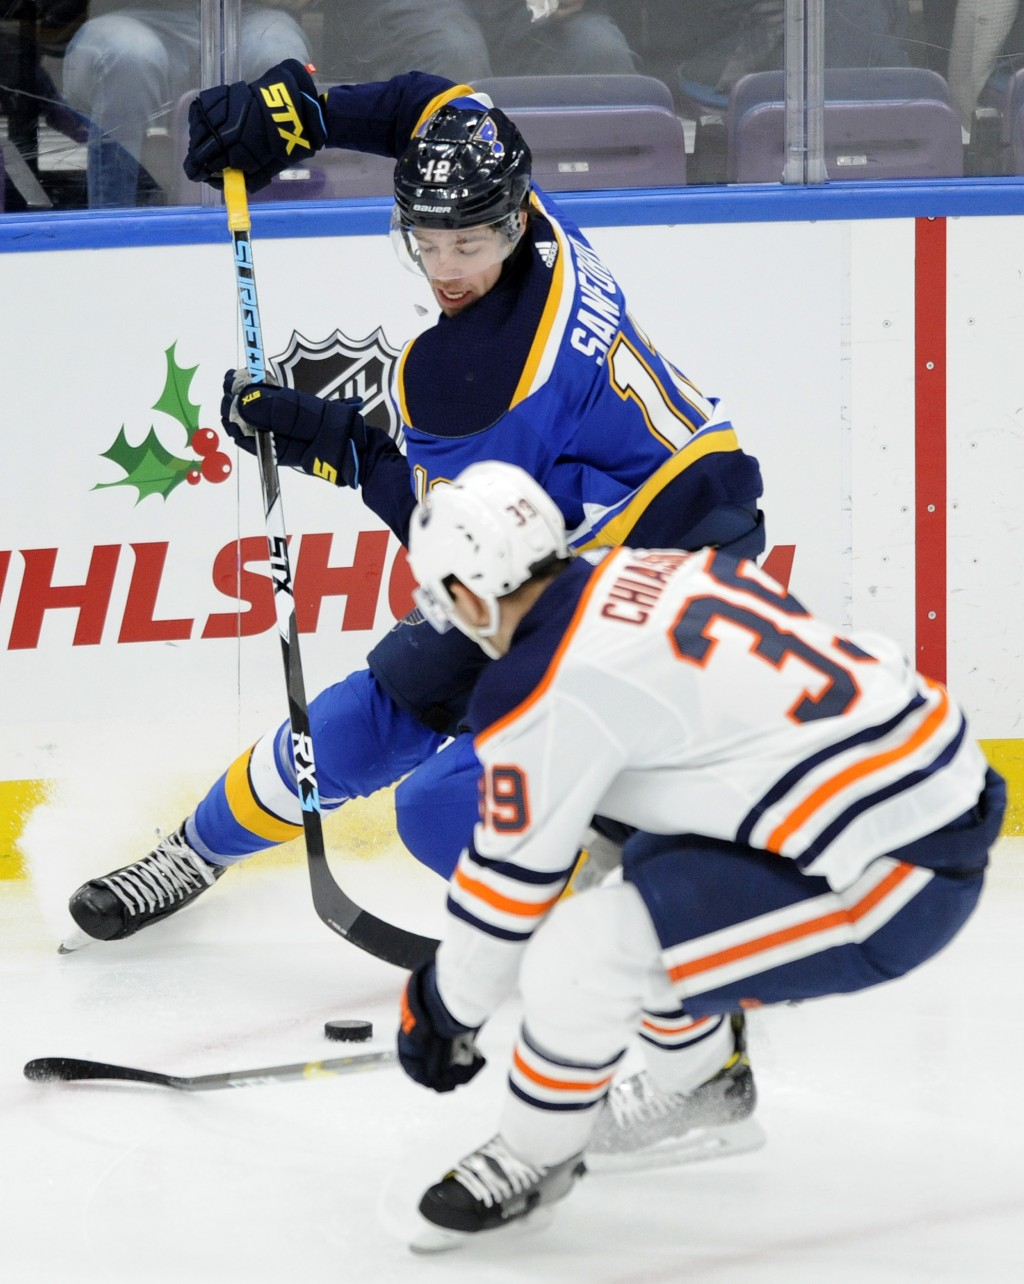 St. Louis Blues' Zach Sanford (12) reaches for the puck against Edmonton Oilers' Alex Chiasson (39) during the first period of an NHL hockey game, Wed